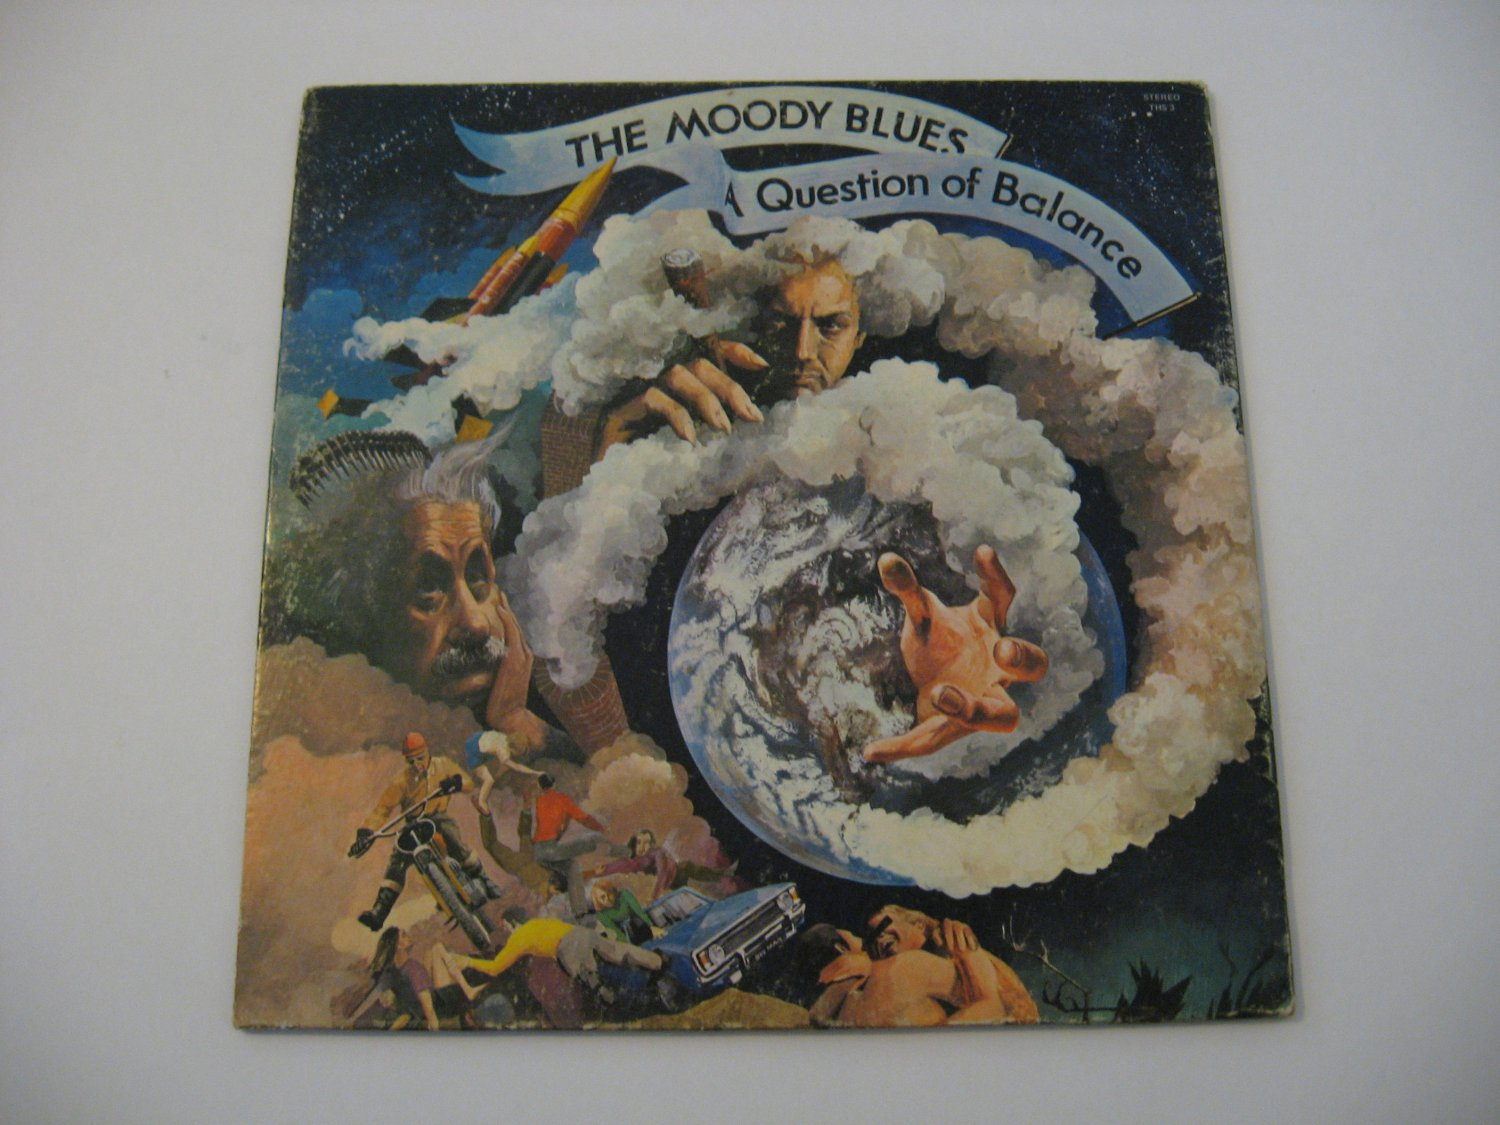 The Moody Blues - A Question Of Balance - Circa 1970